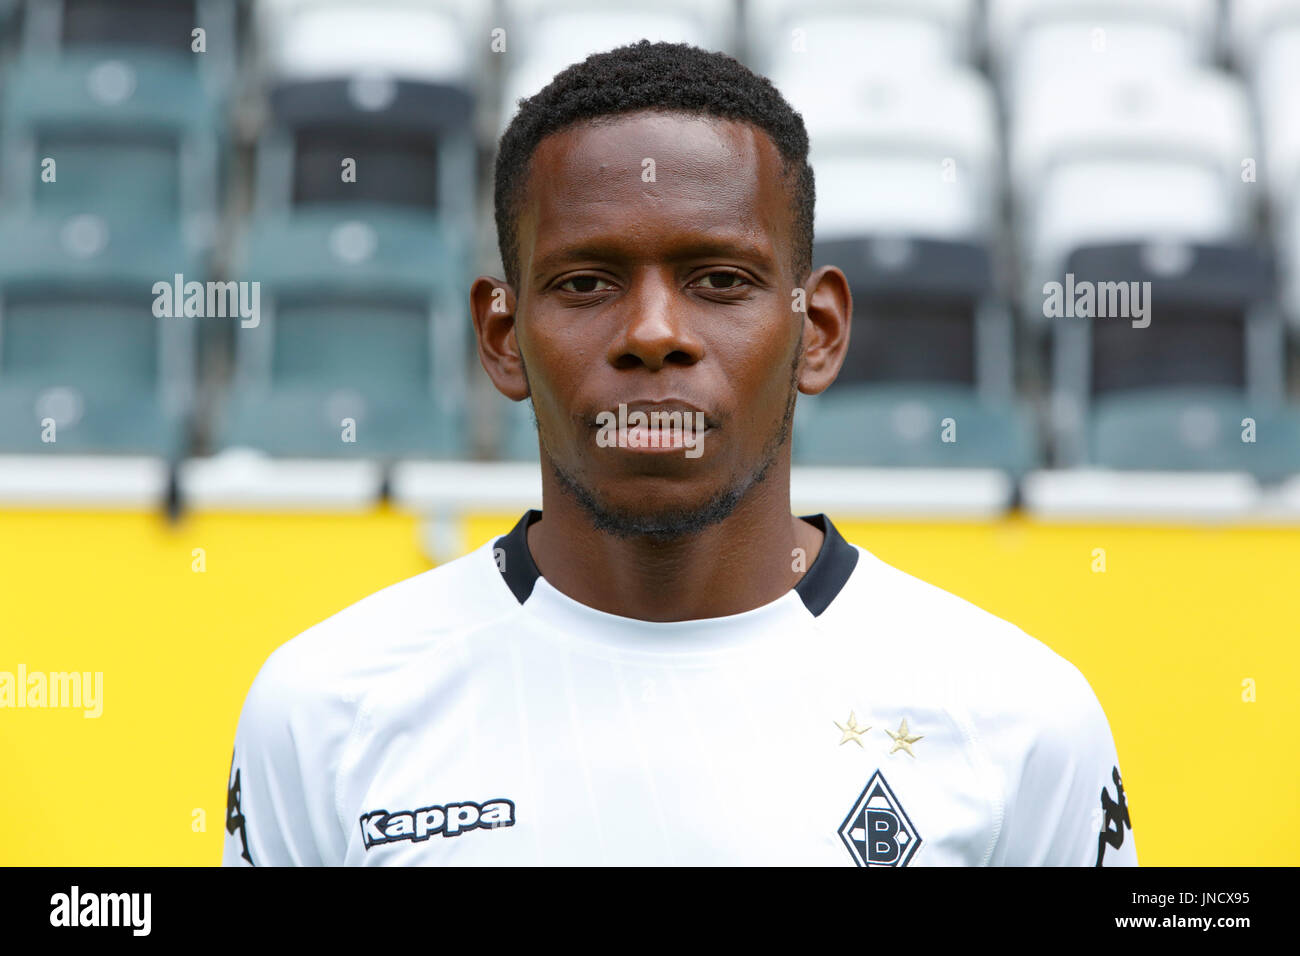 football,Bundesliga,2017/2018,Borussia Moenchengladbach,press photo shooting,portrait,Ibrahima Traore Stock Photo